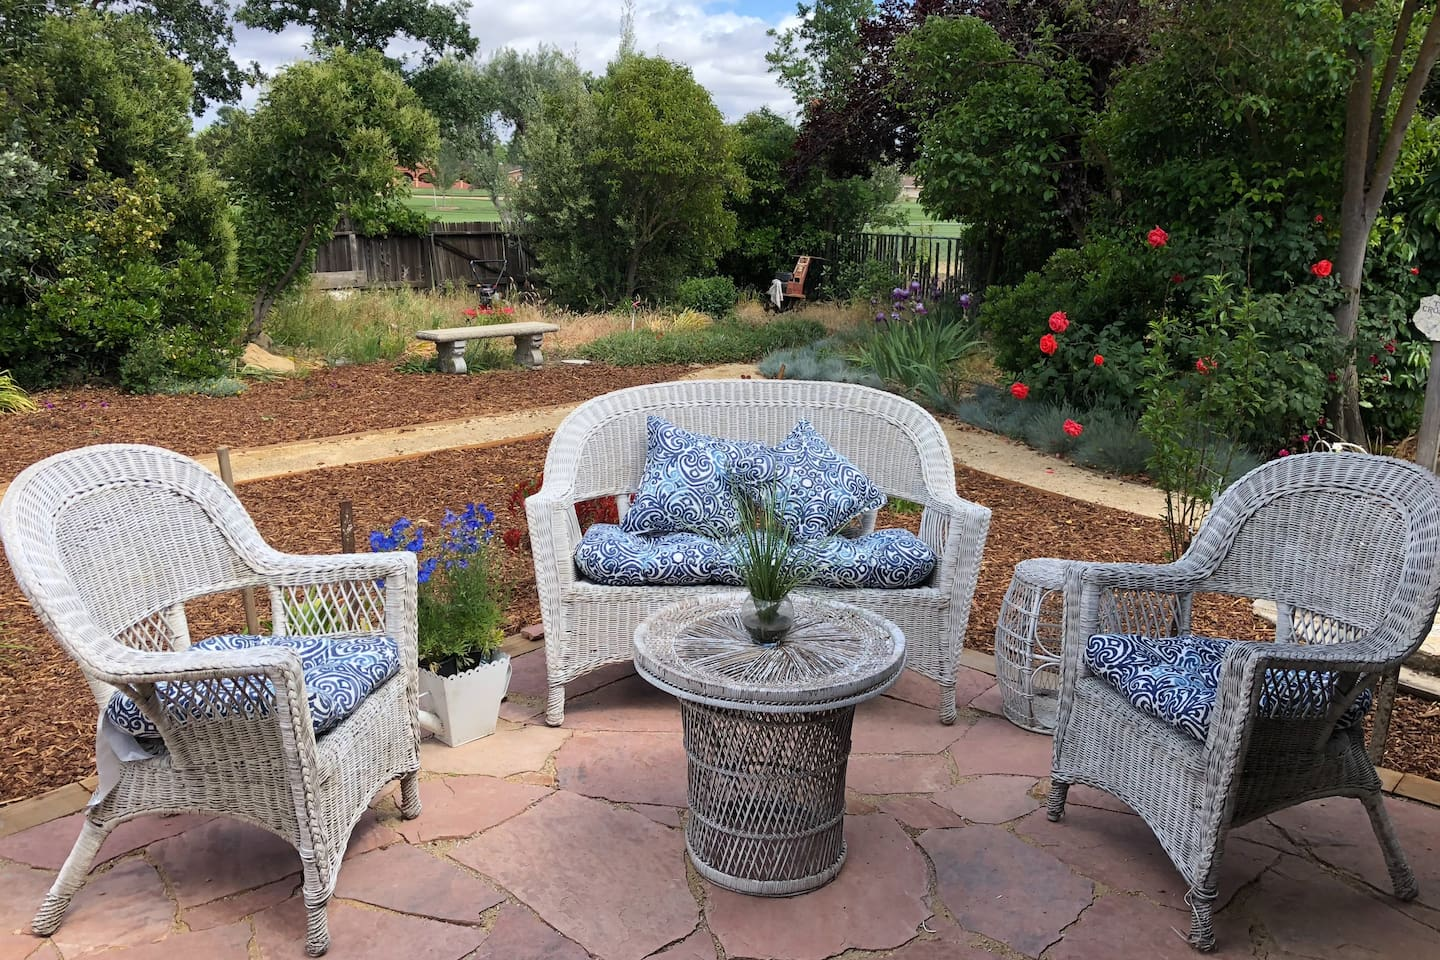 The private rooms are located in a beautiful setting with multiple patios and garden seating areas. This wine country getaway is peaceful and surrounded by a lush golf course.